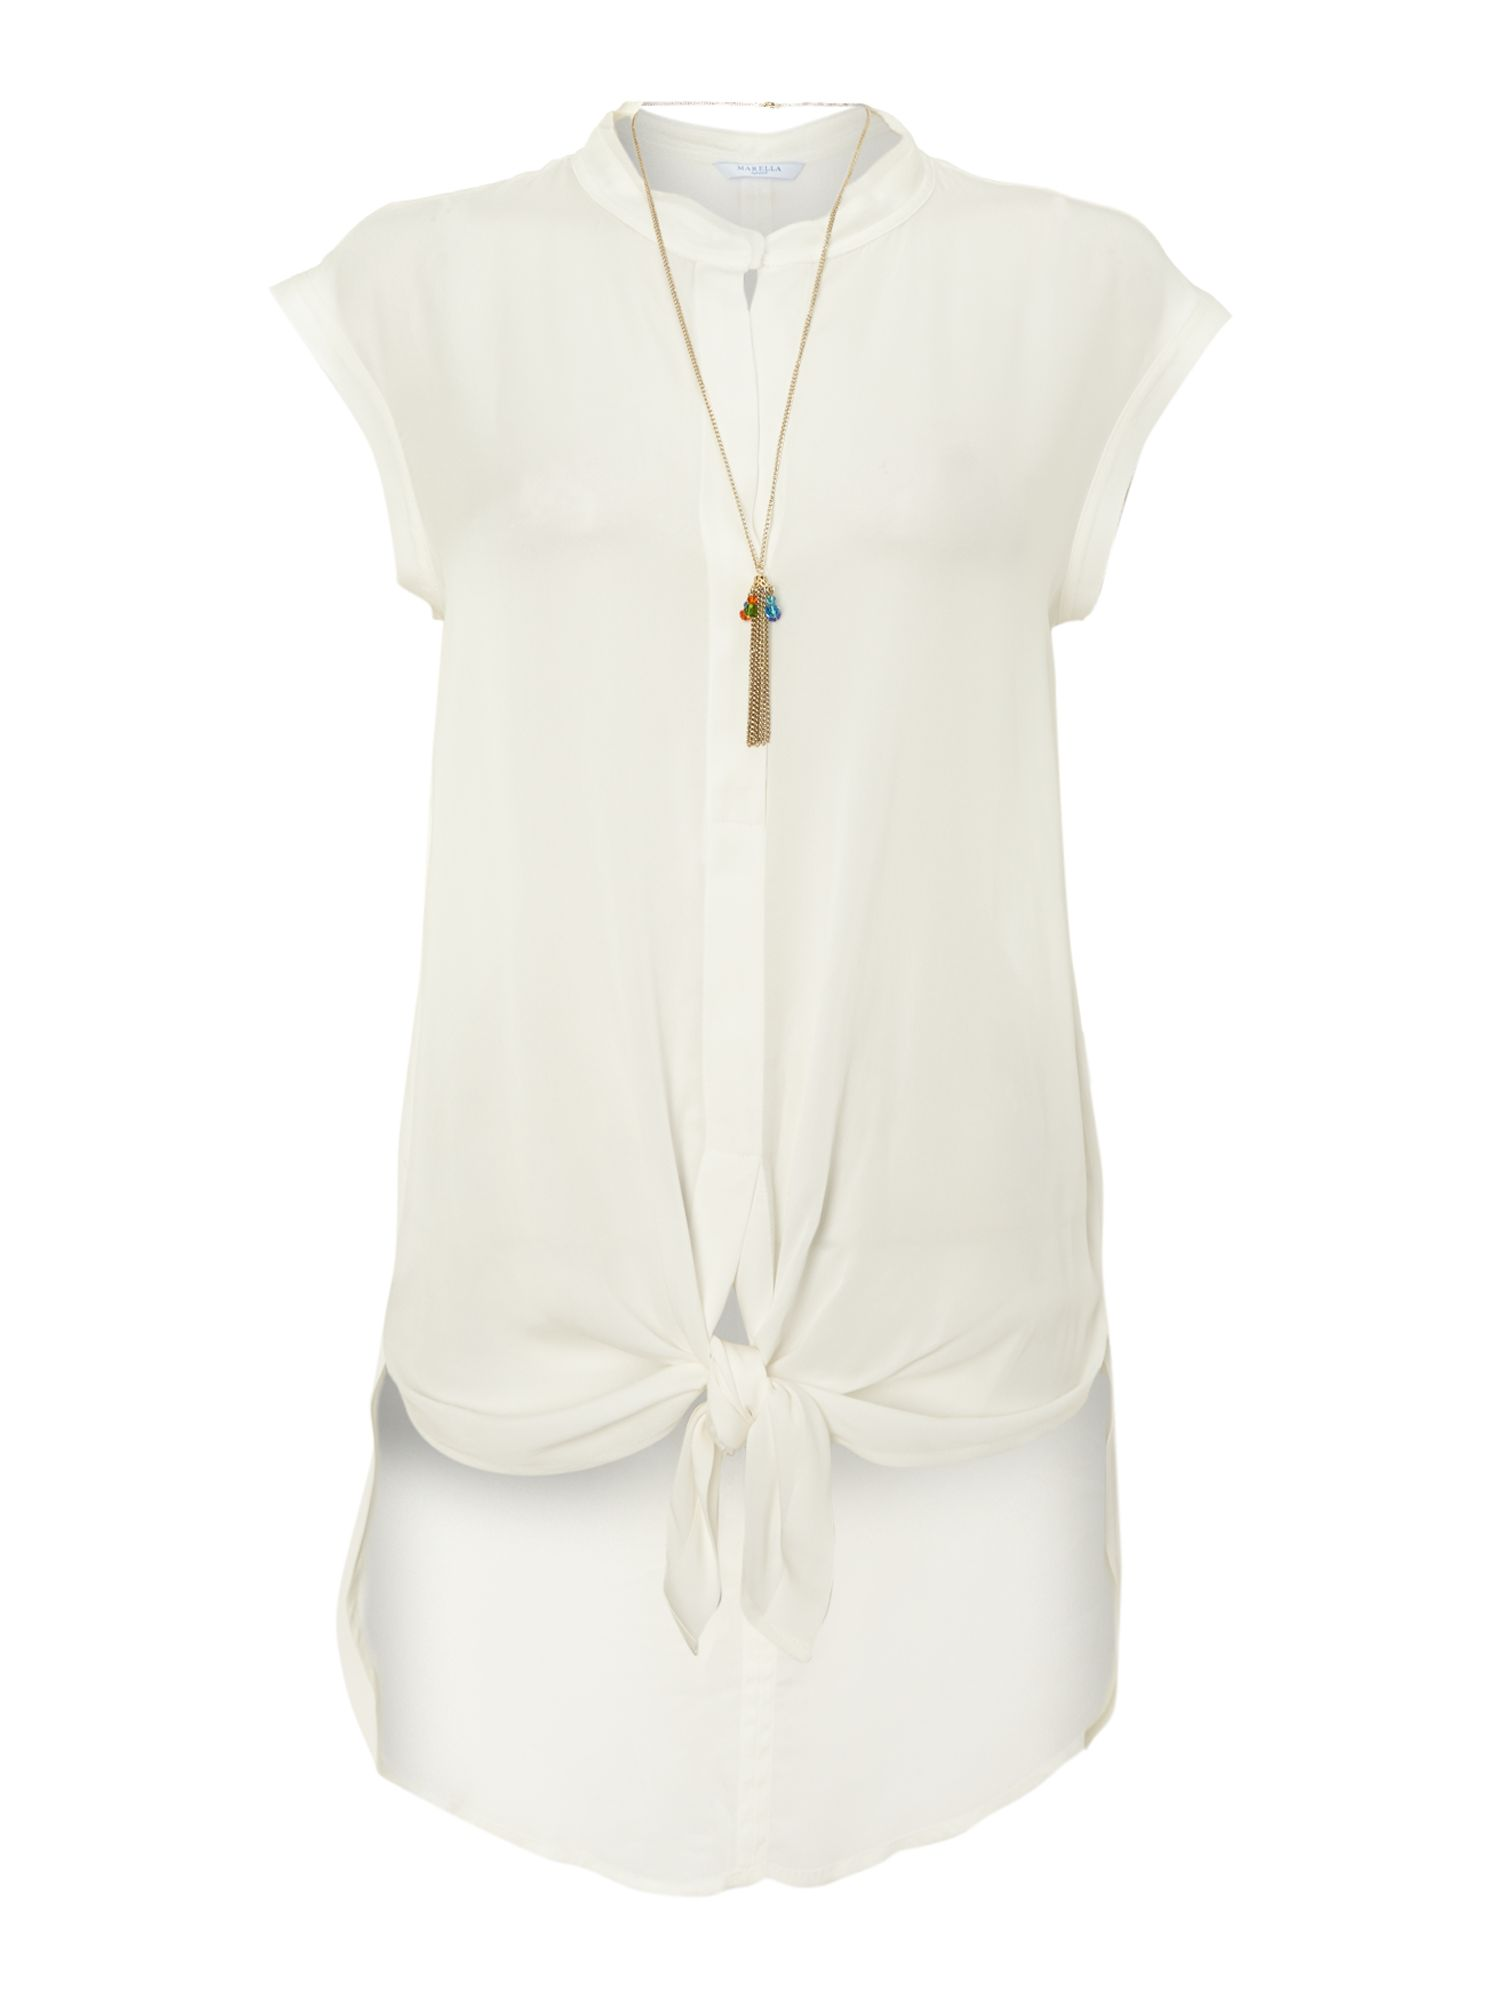 Susy sleeveless shirt with tie front